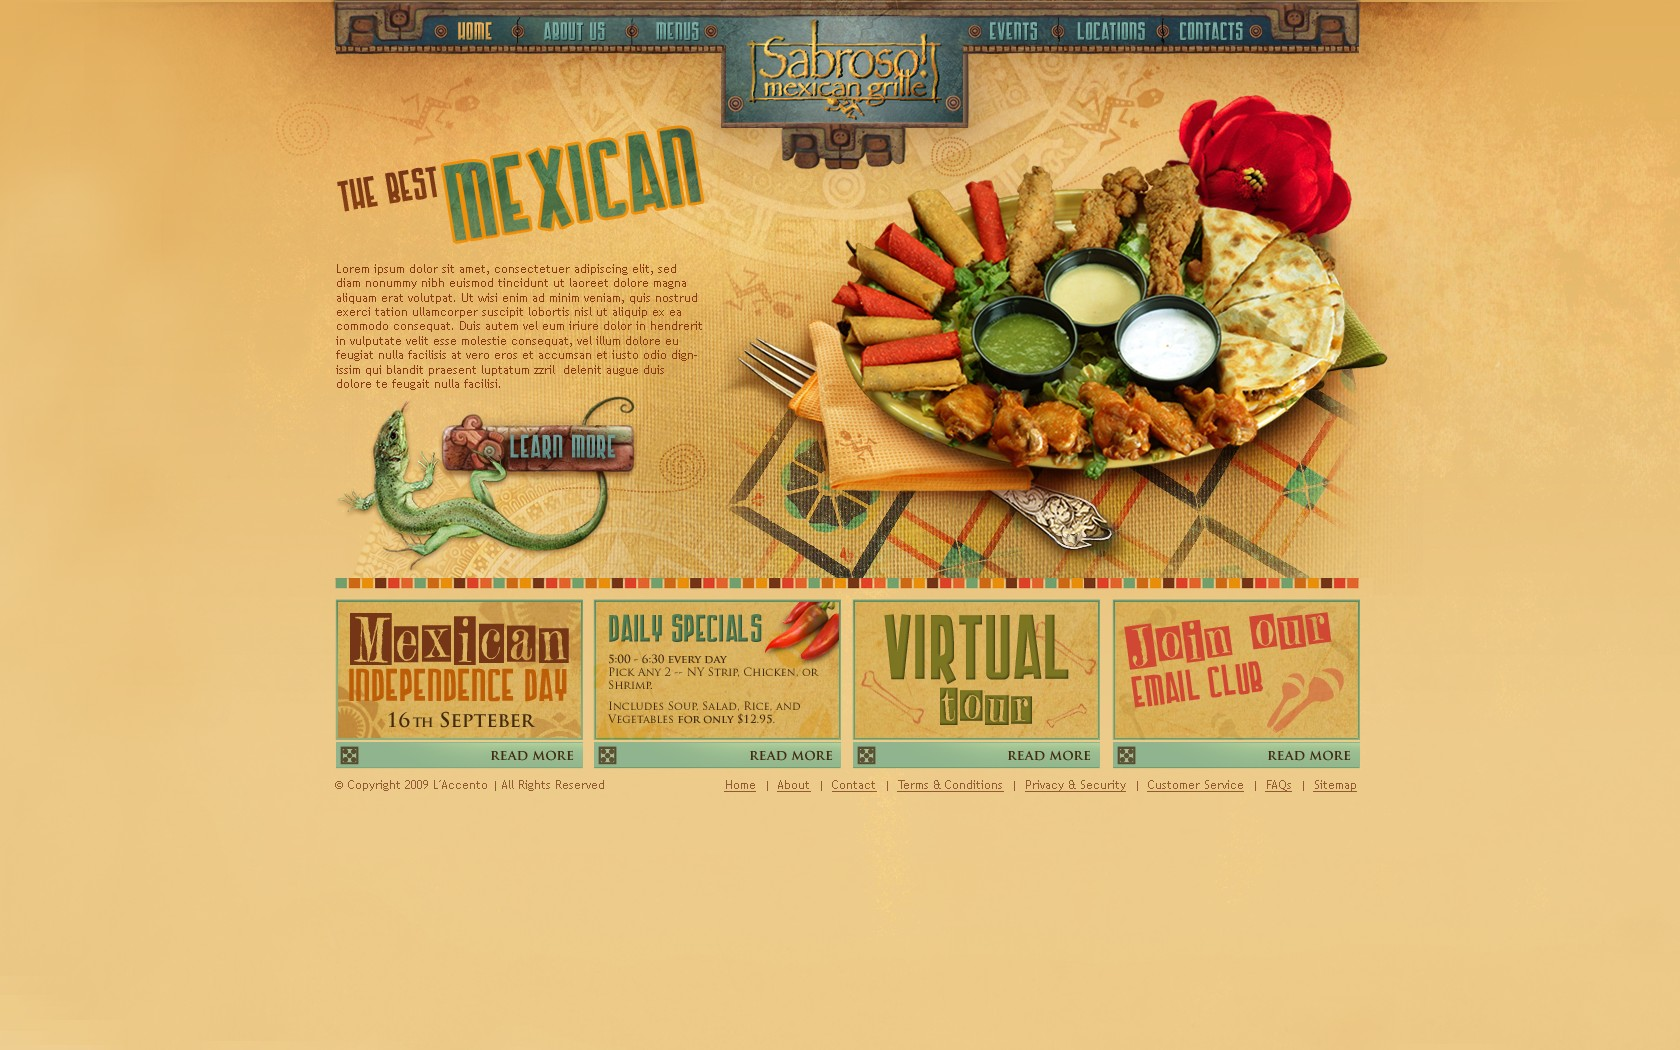 Website design for a Mexican restaurant